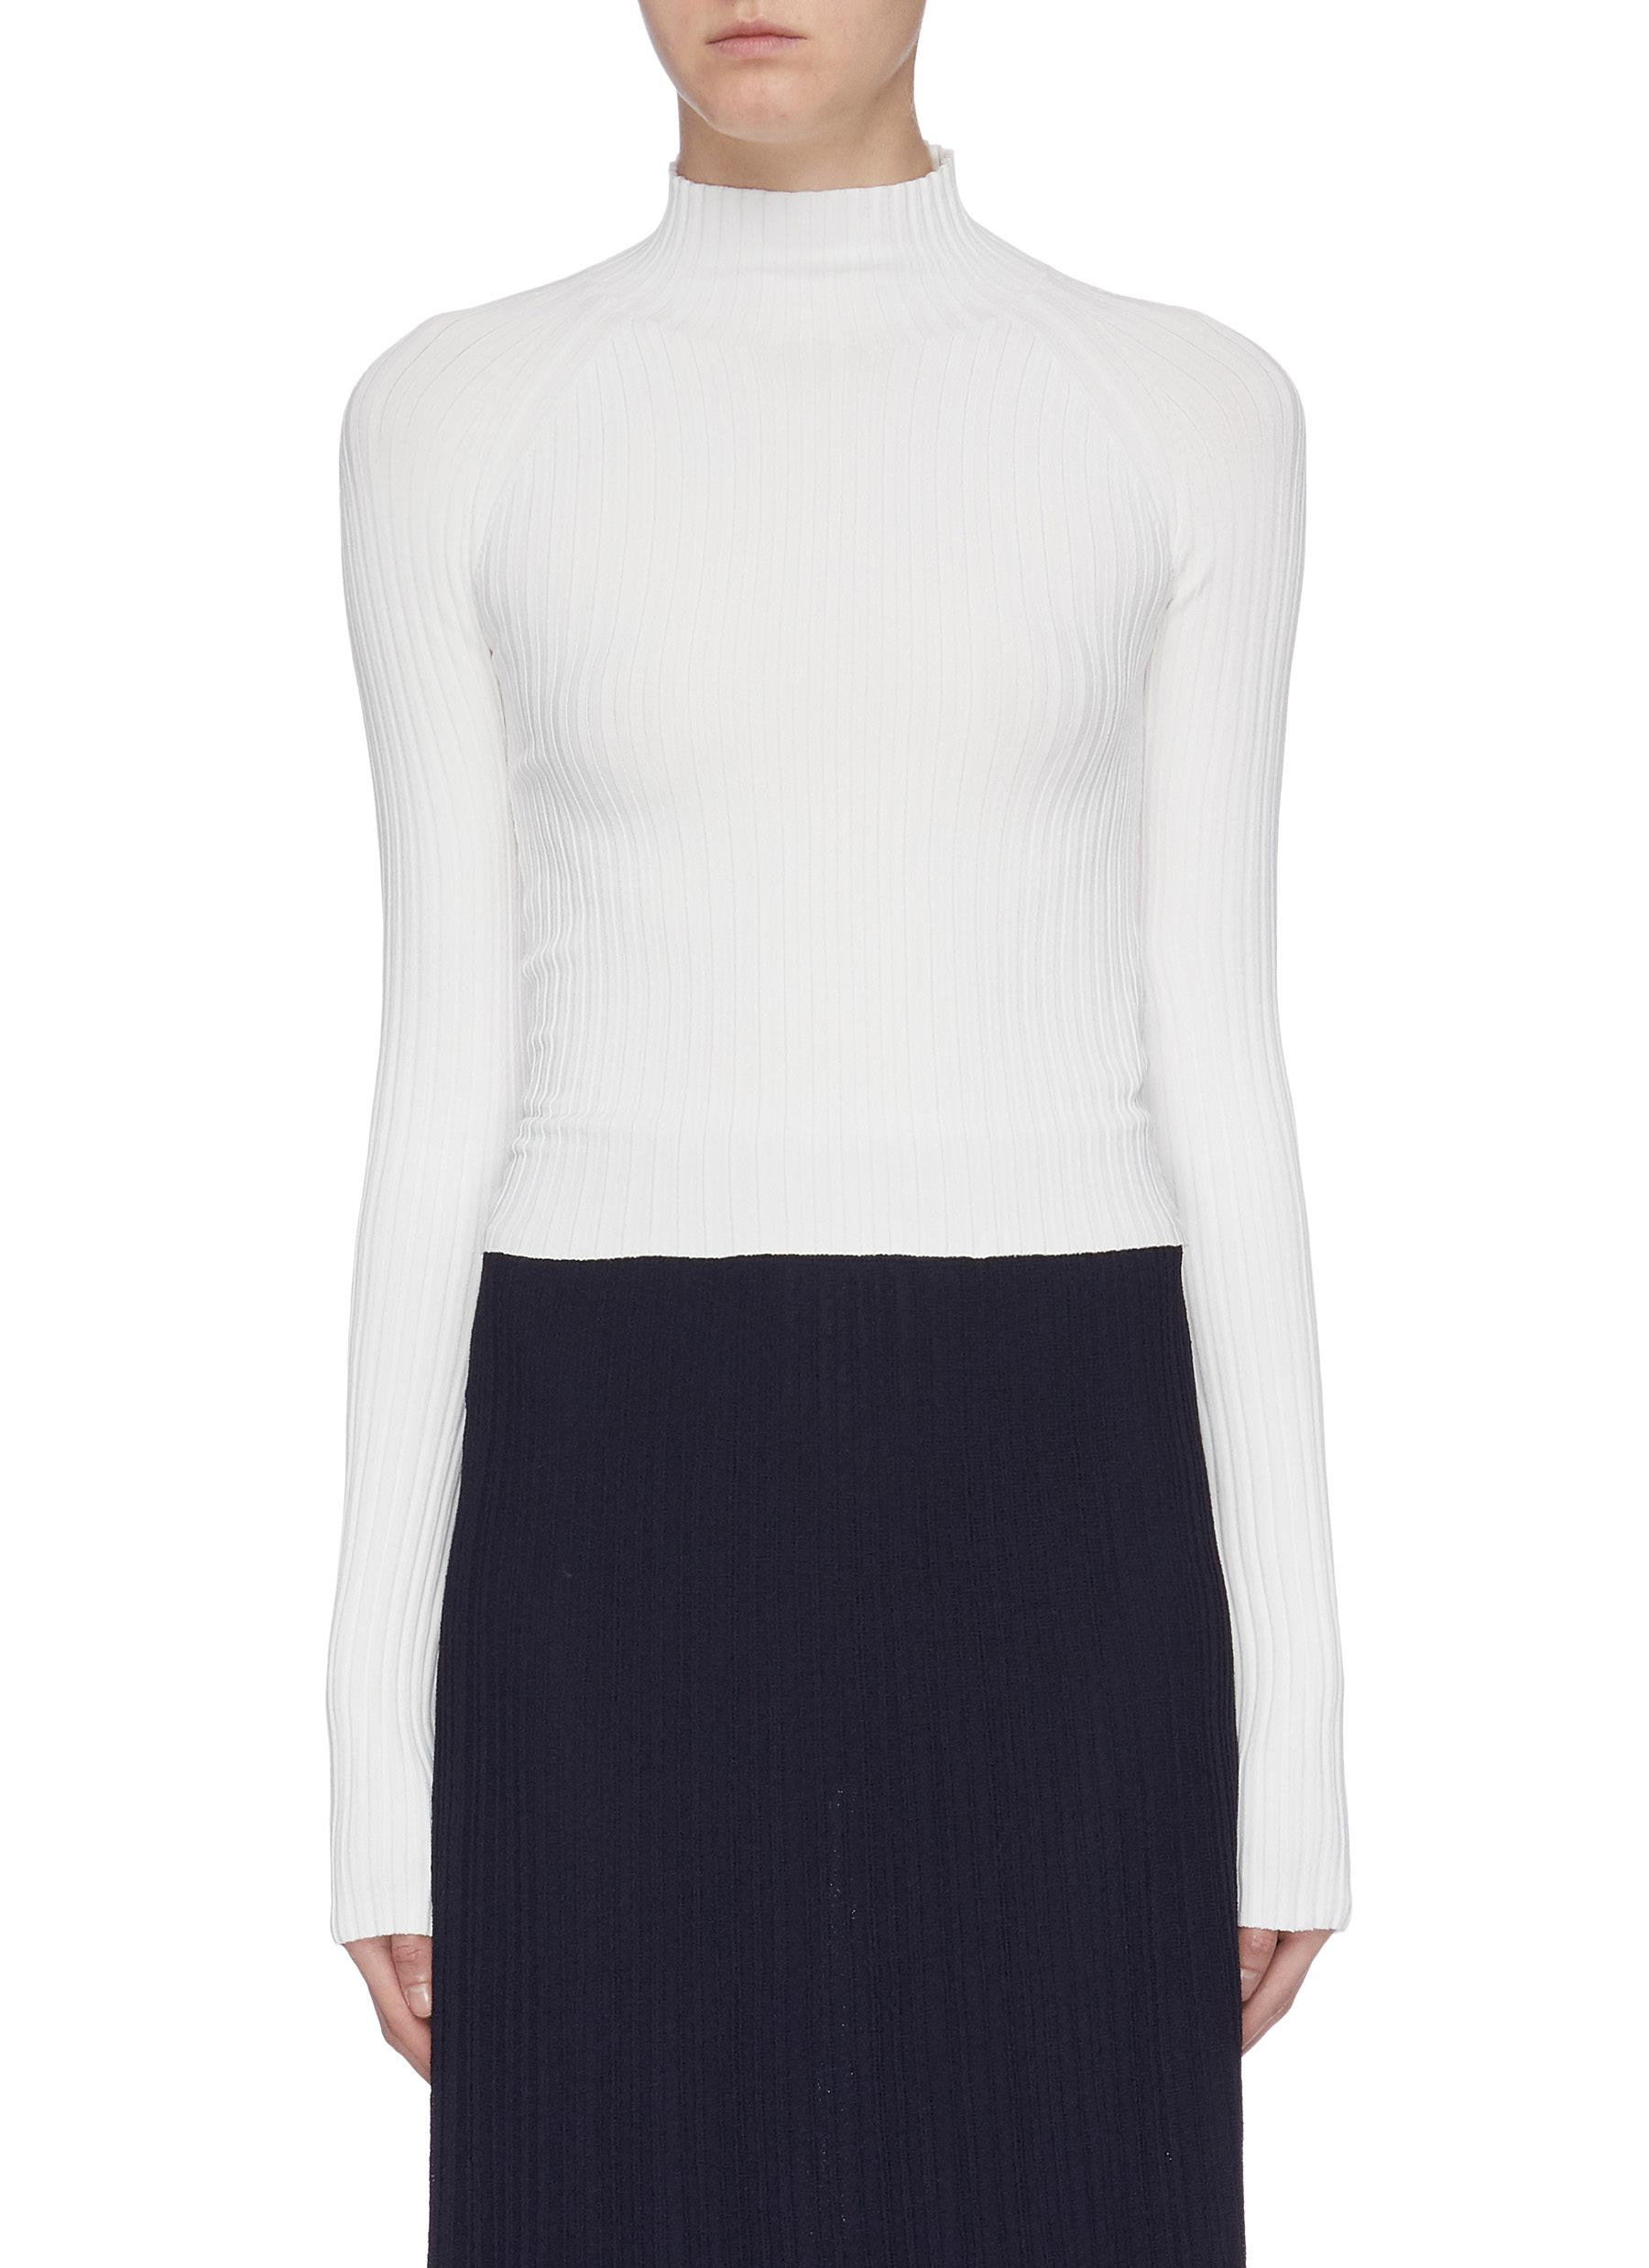 Twist cutout back rib knit cropped top by Dion Lee